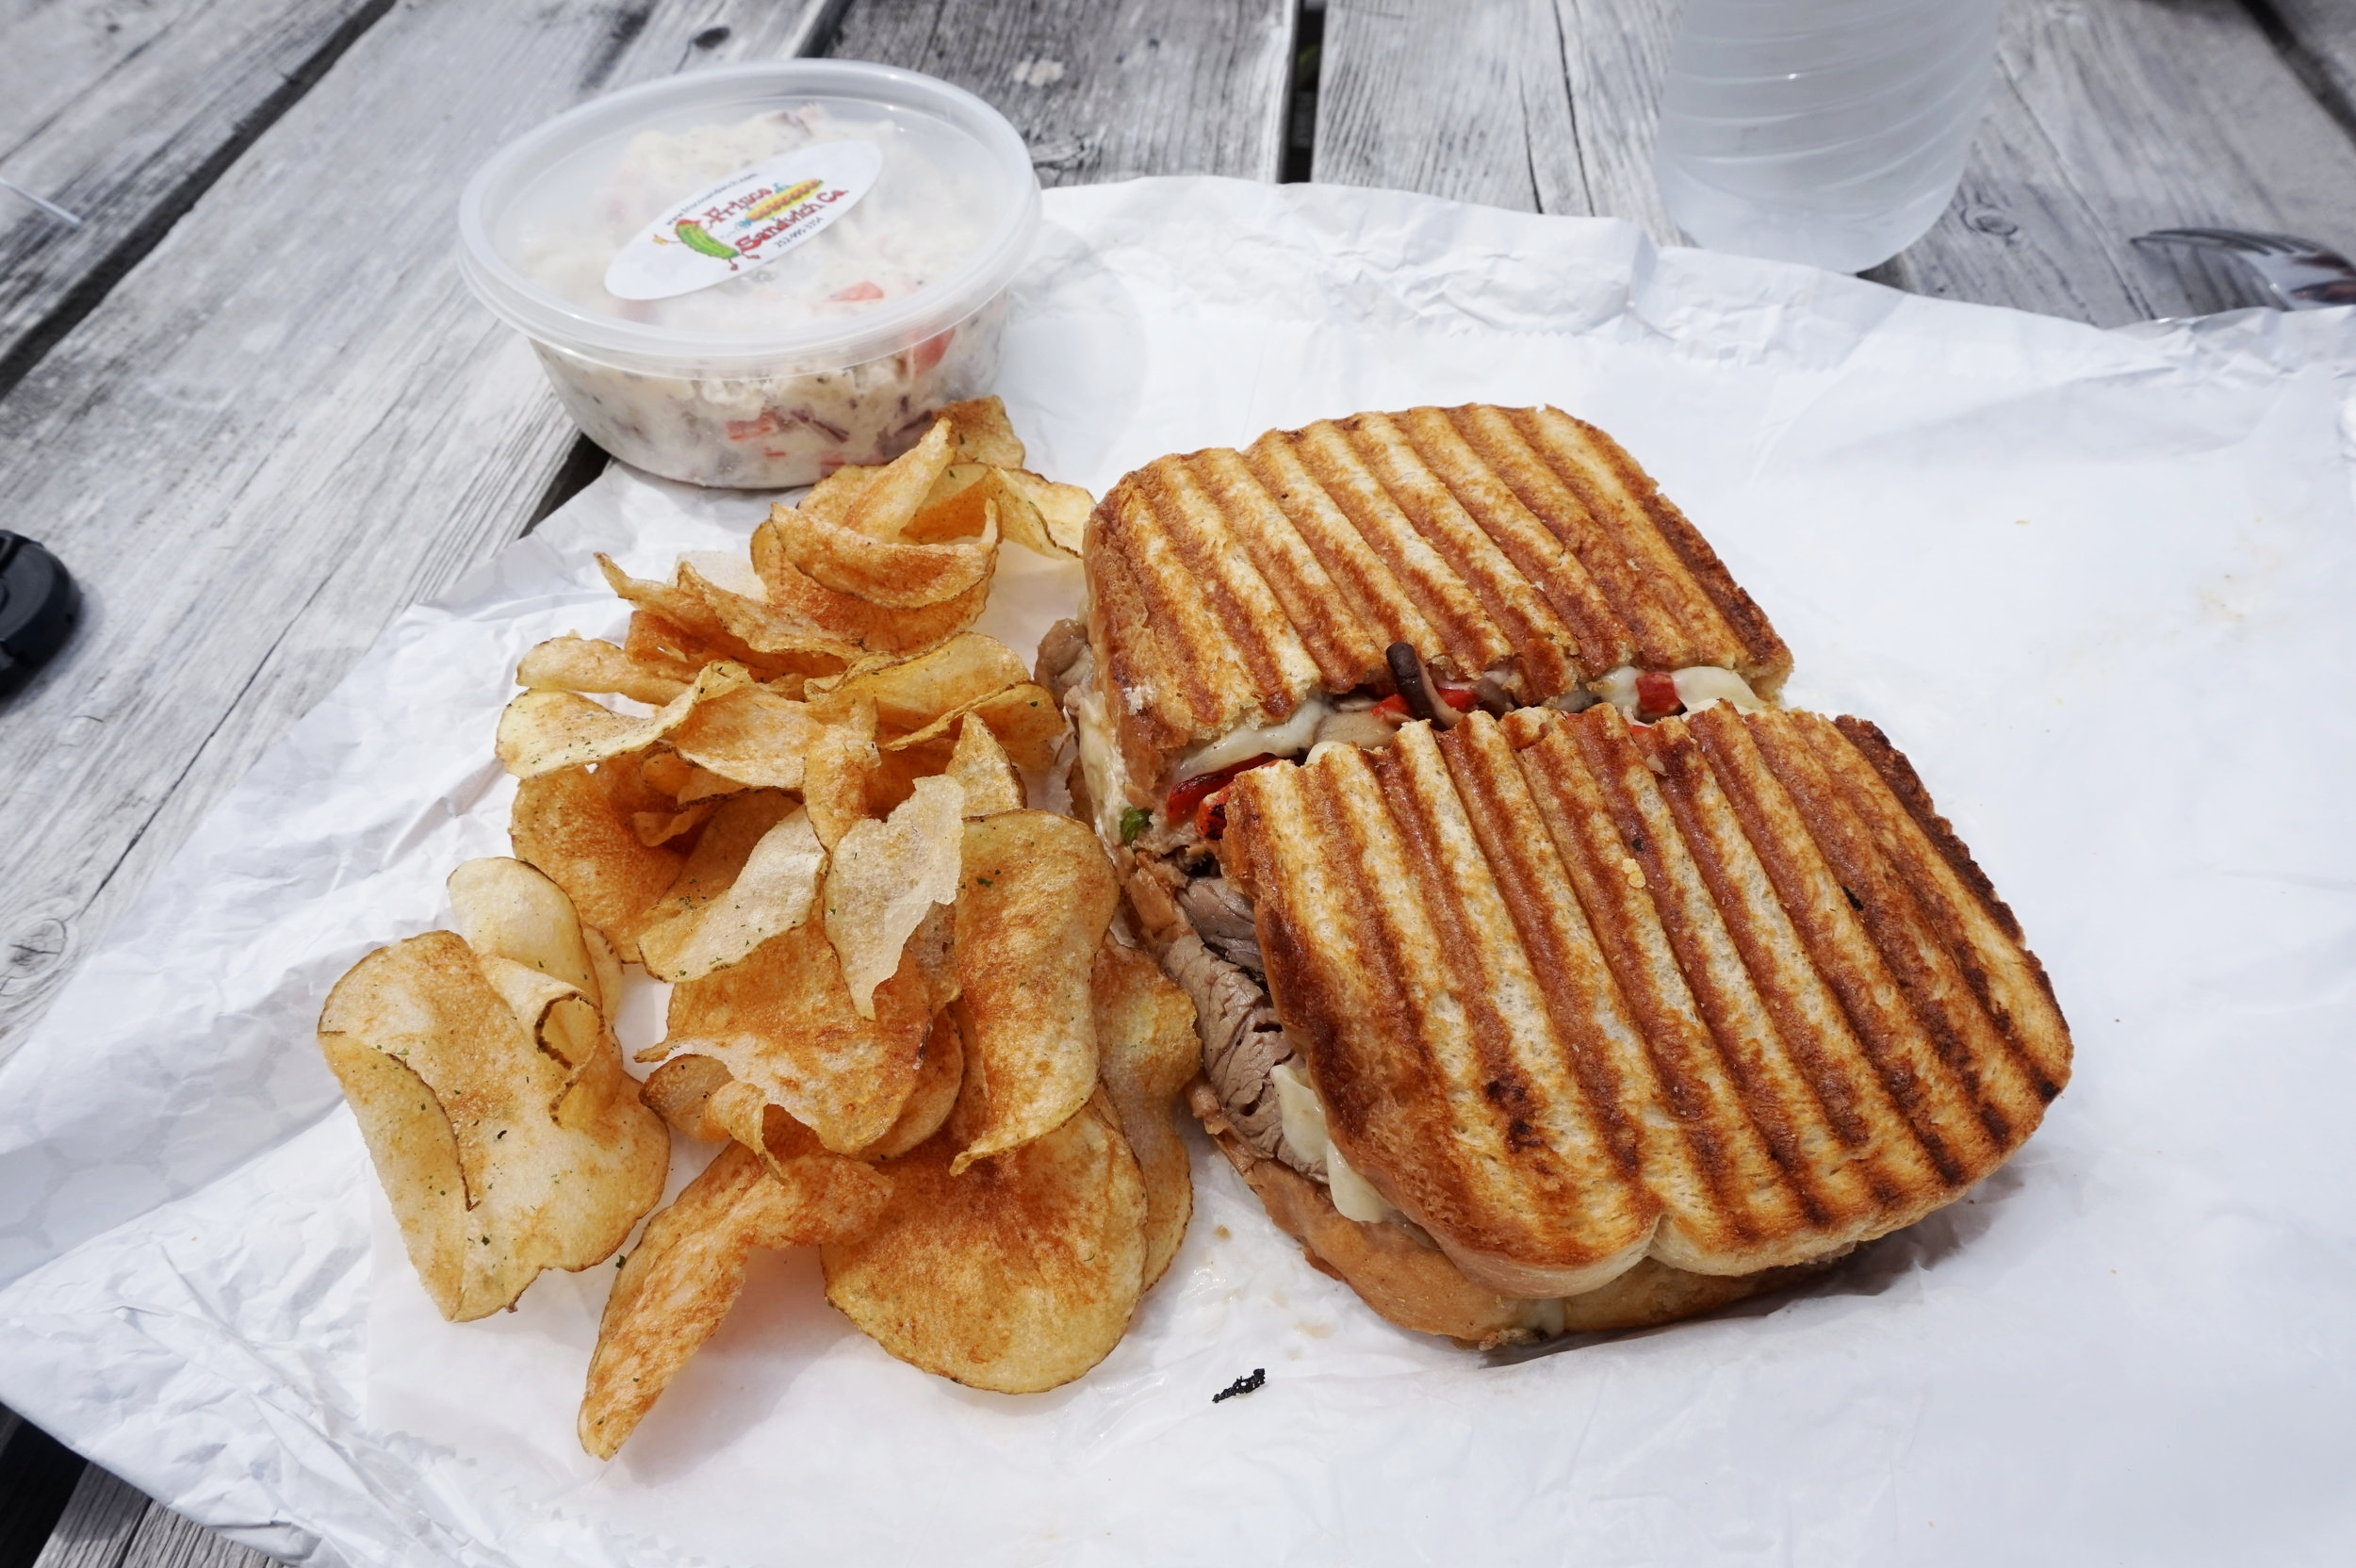 The Roast Beaster panini, with homemade potato chips and potato salad, from Frisco Sandwich Company.